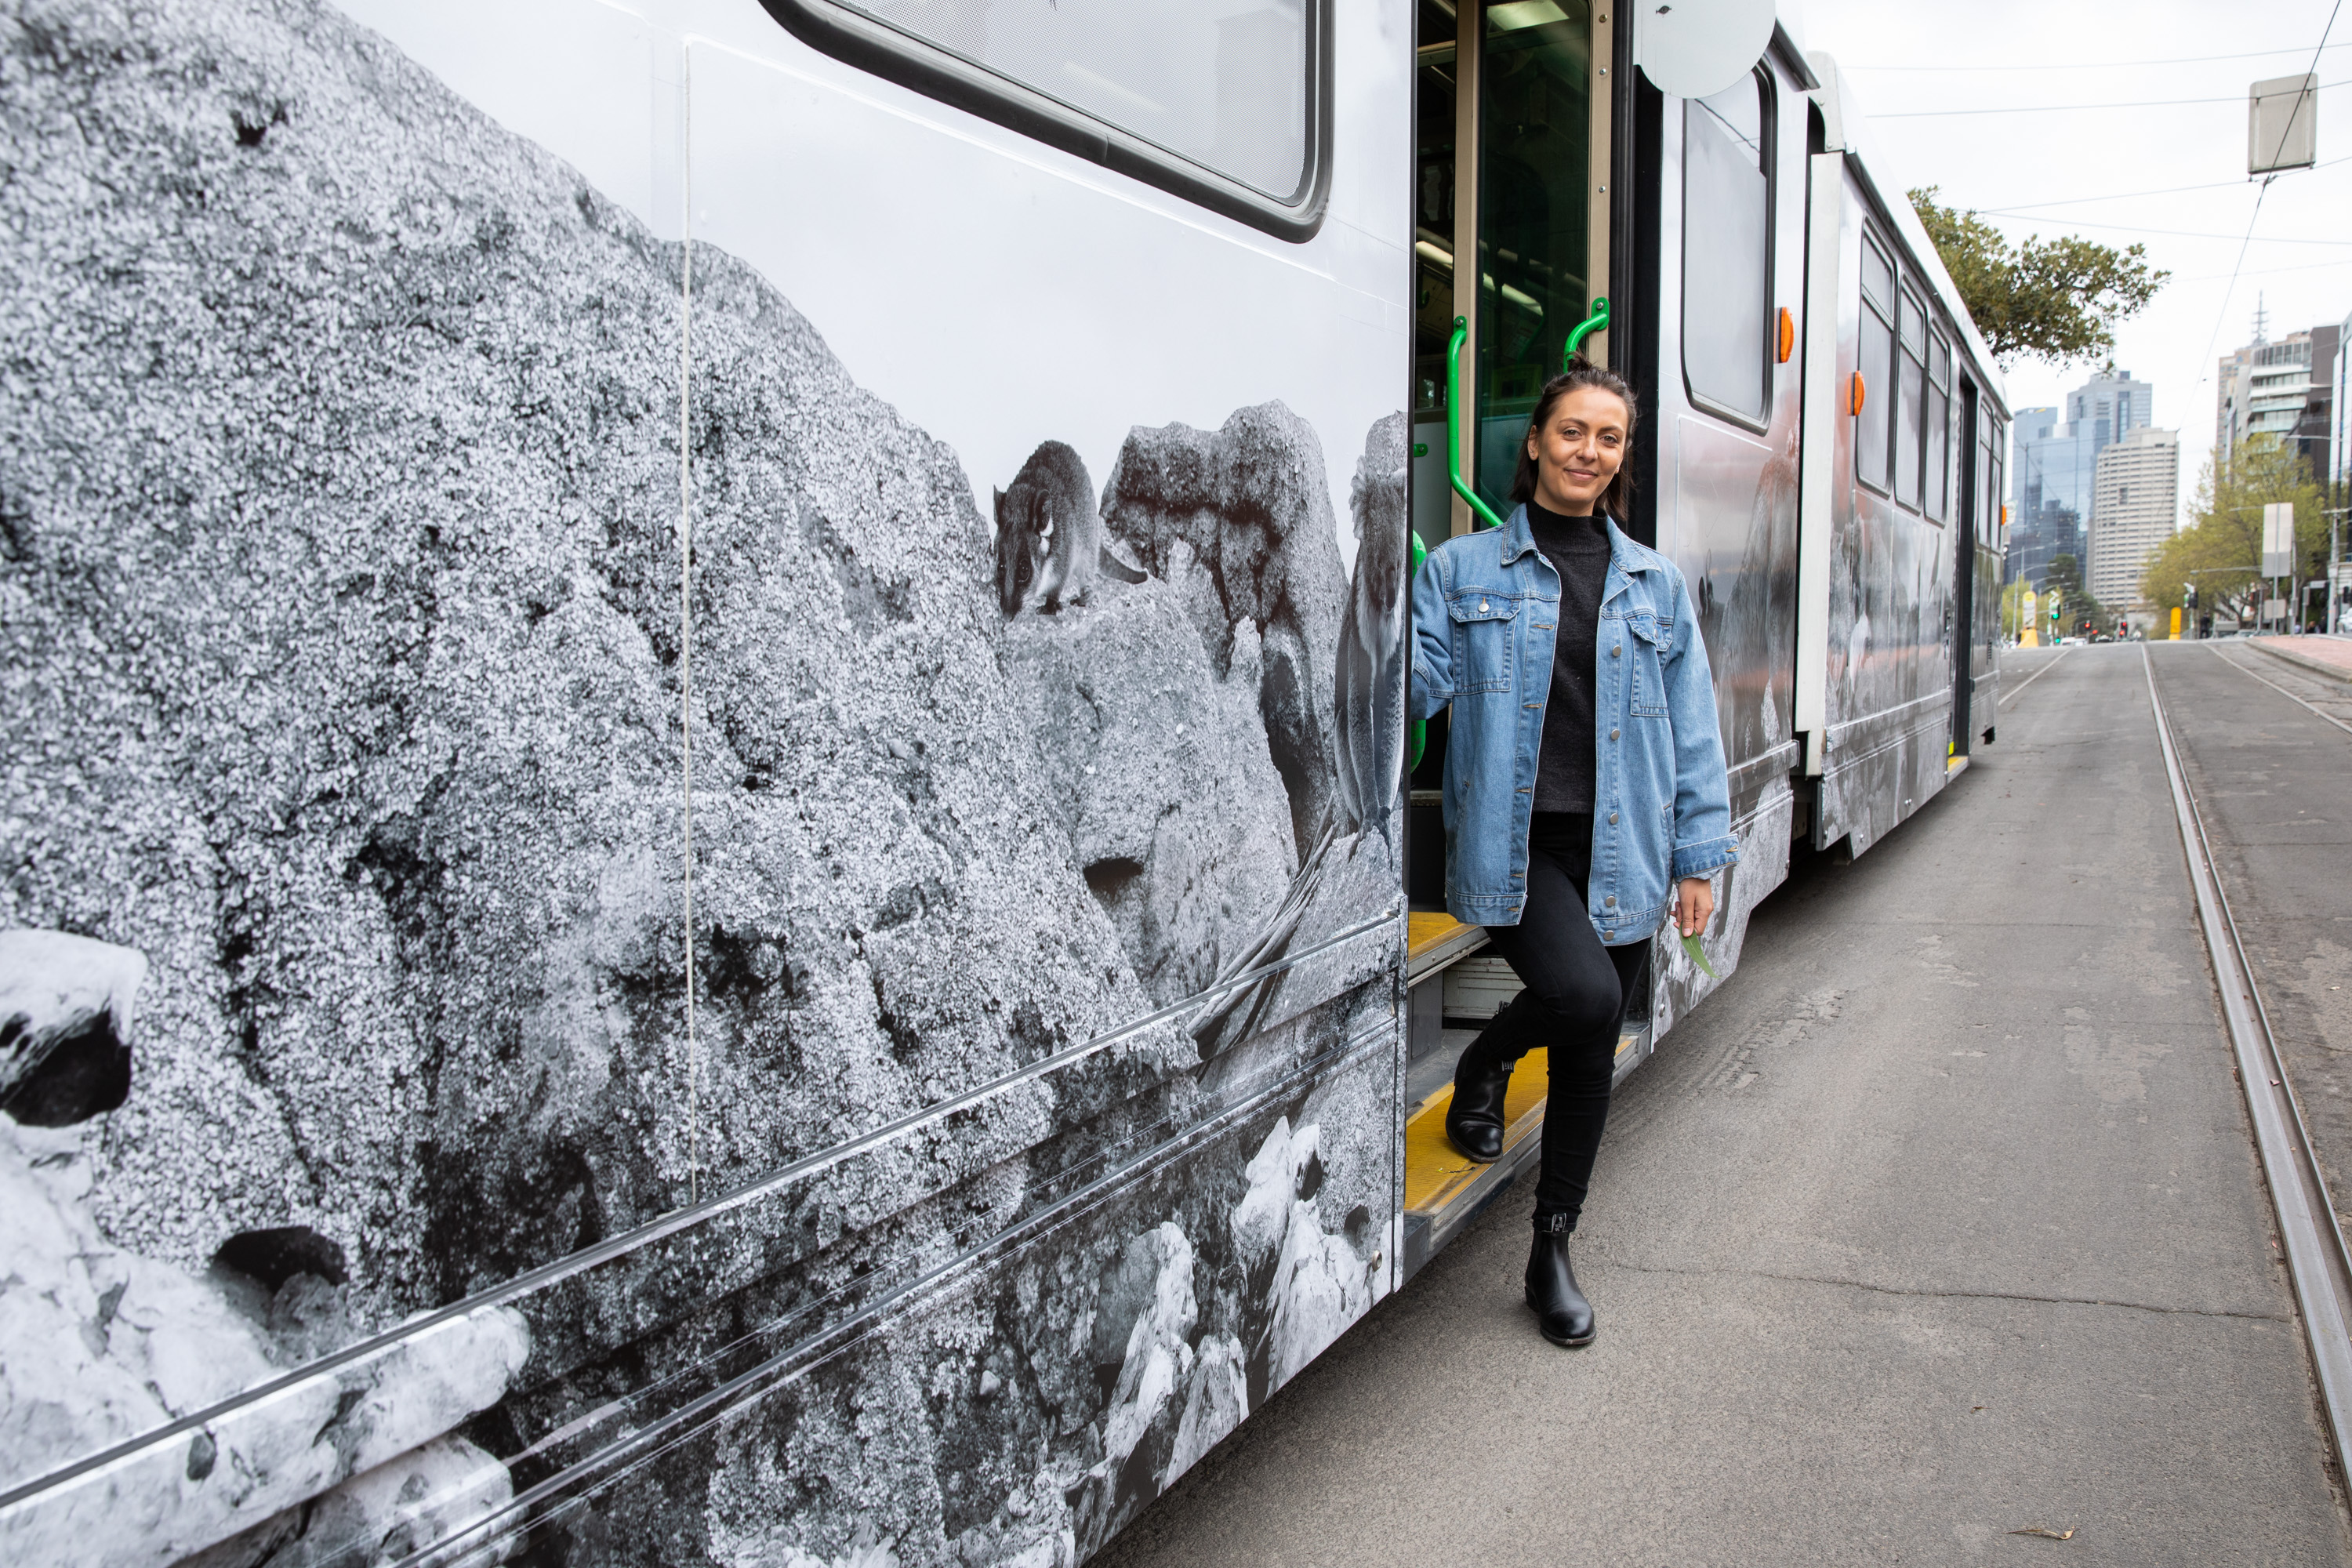 Hayley Millar-Baker pictured in front of her Melbourne Art Tram, Credit: Supplied.